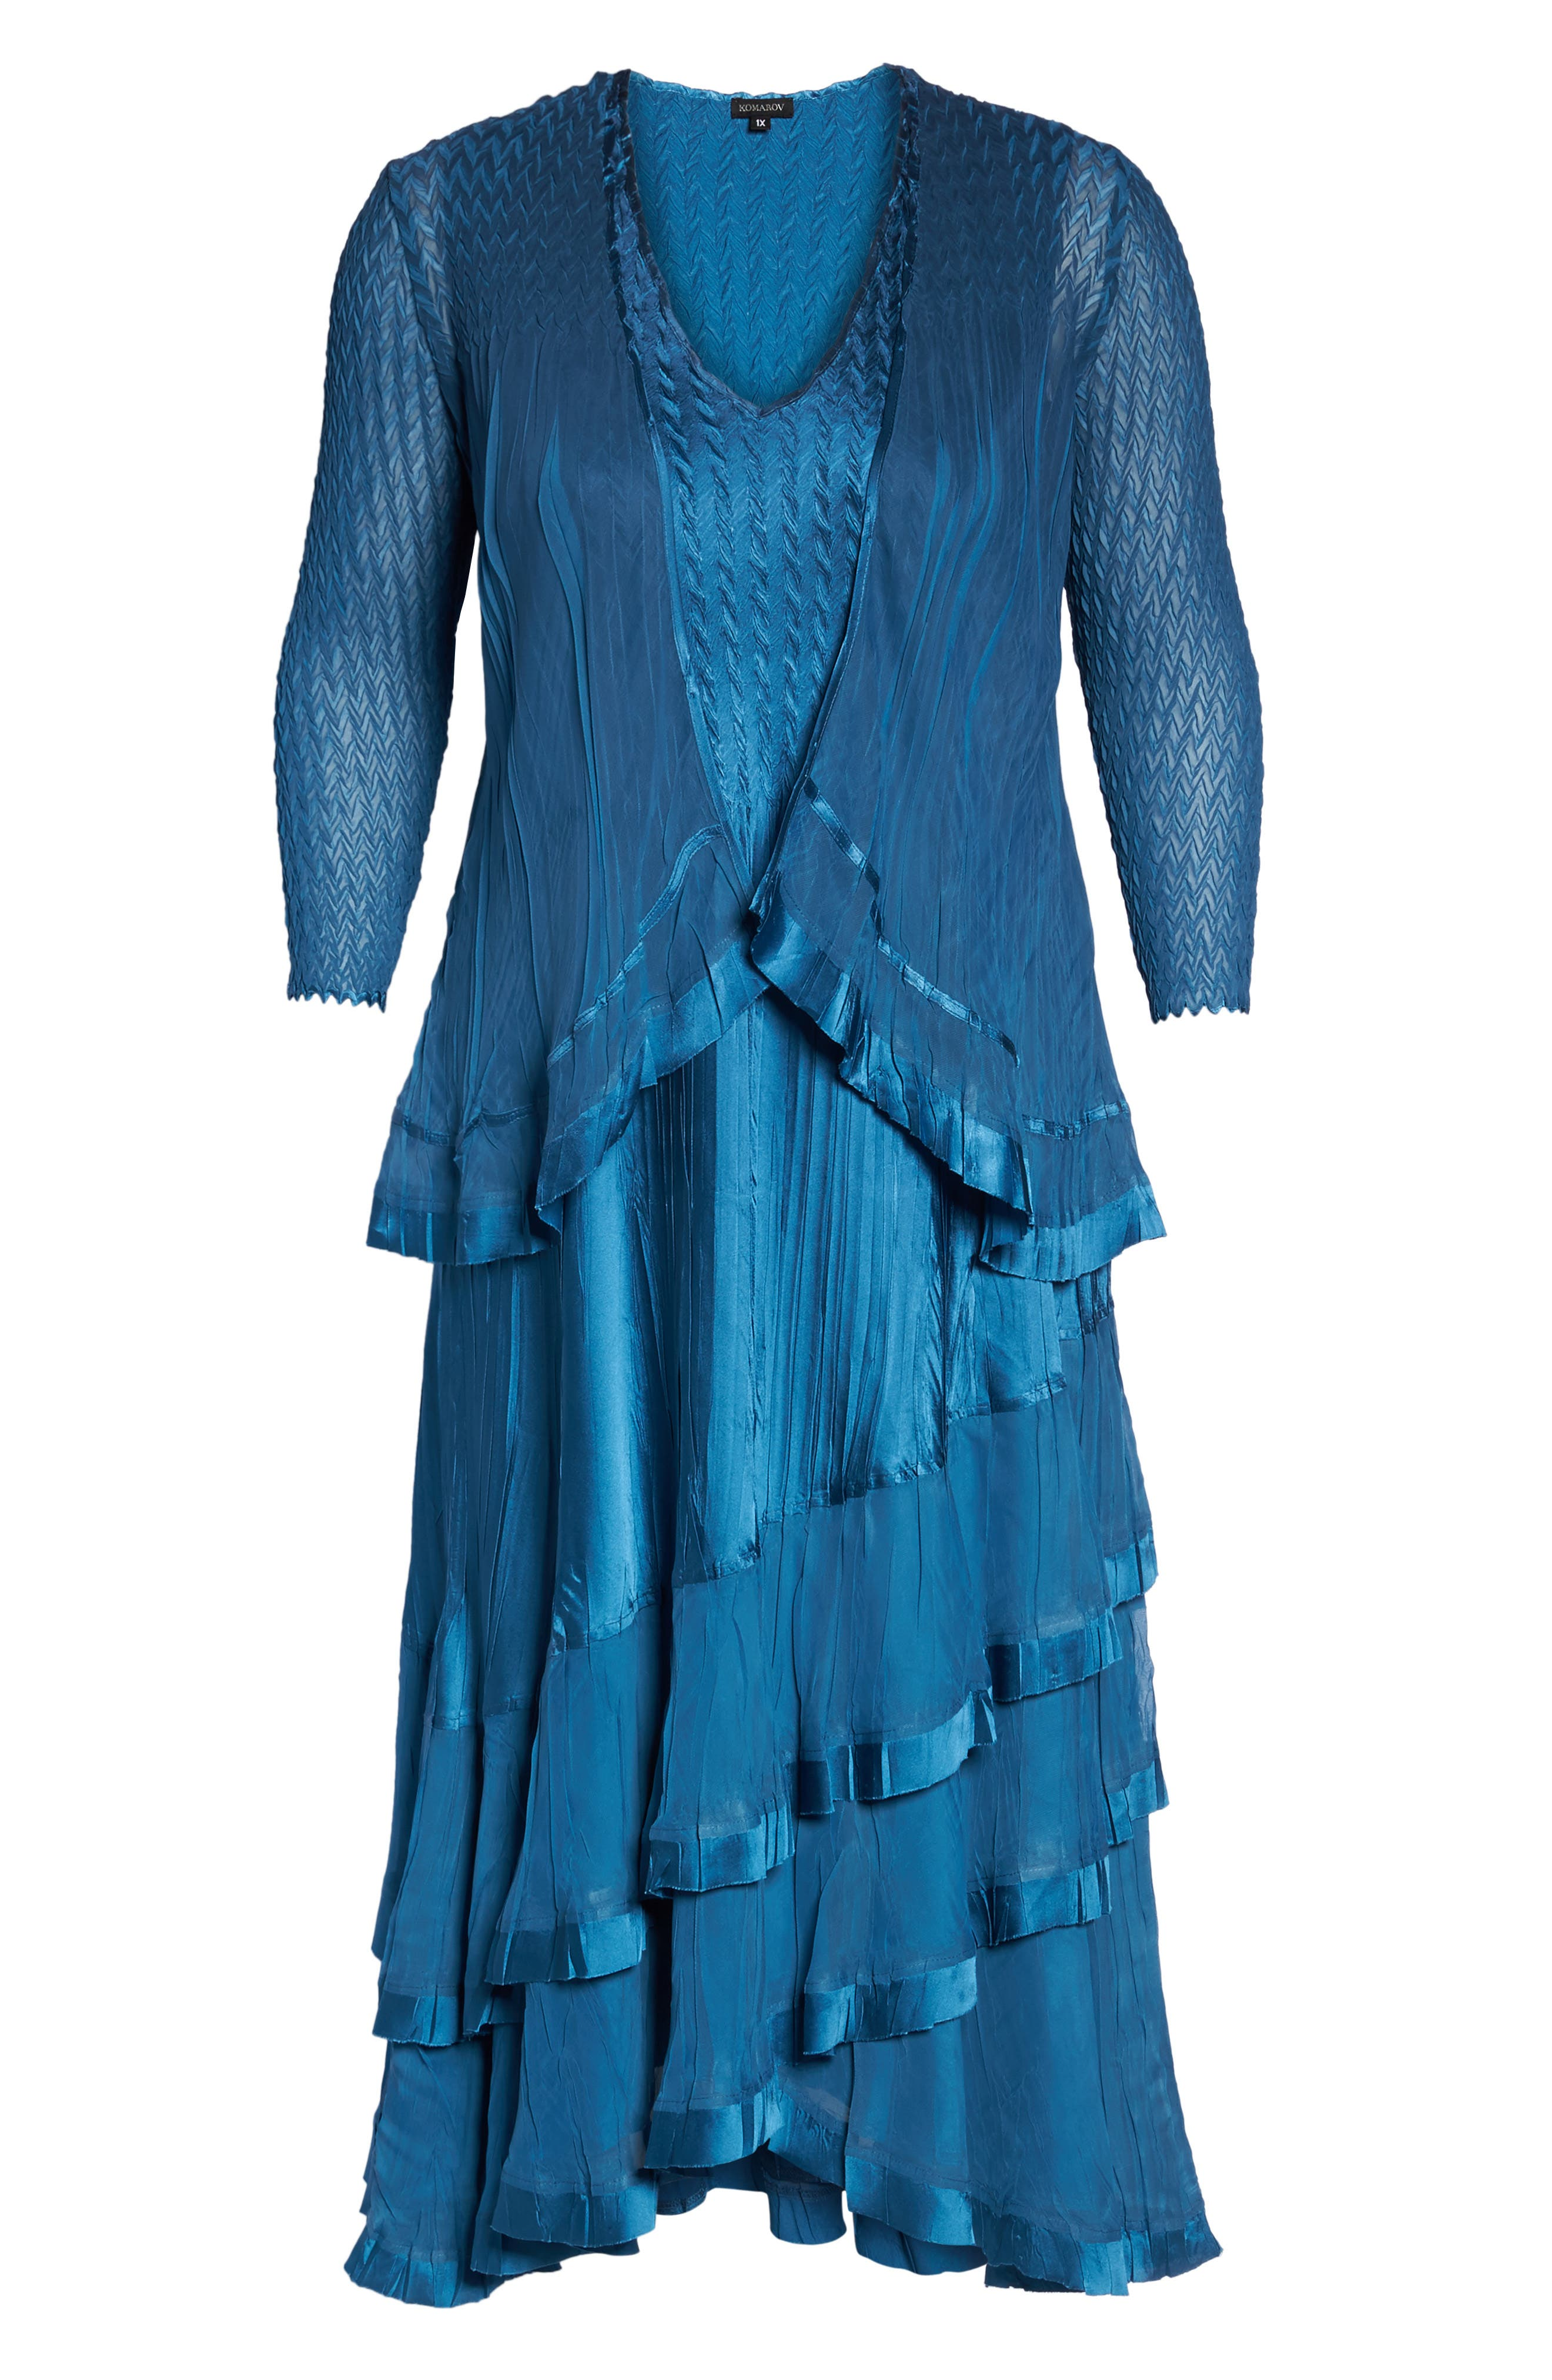 Tiered Dress with Jacket,                             Alternate thumbnail 6, color,                             407